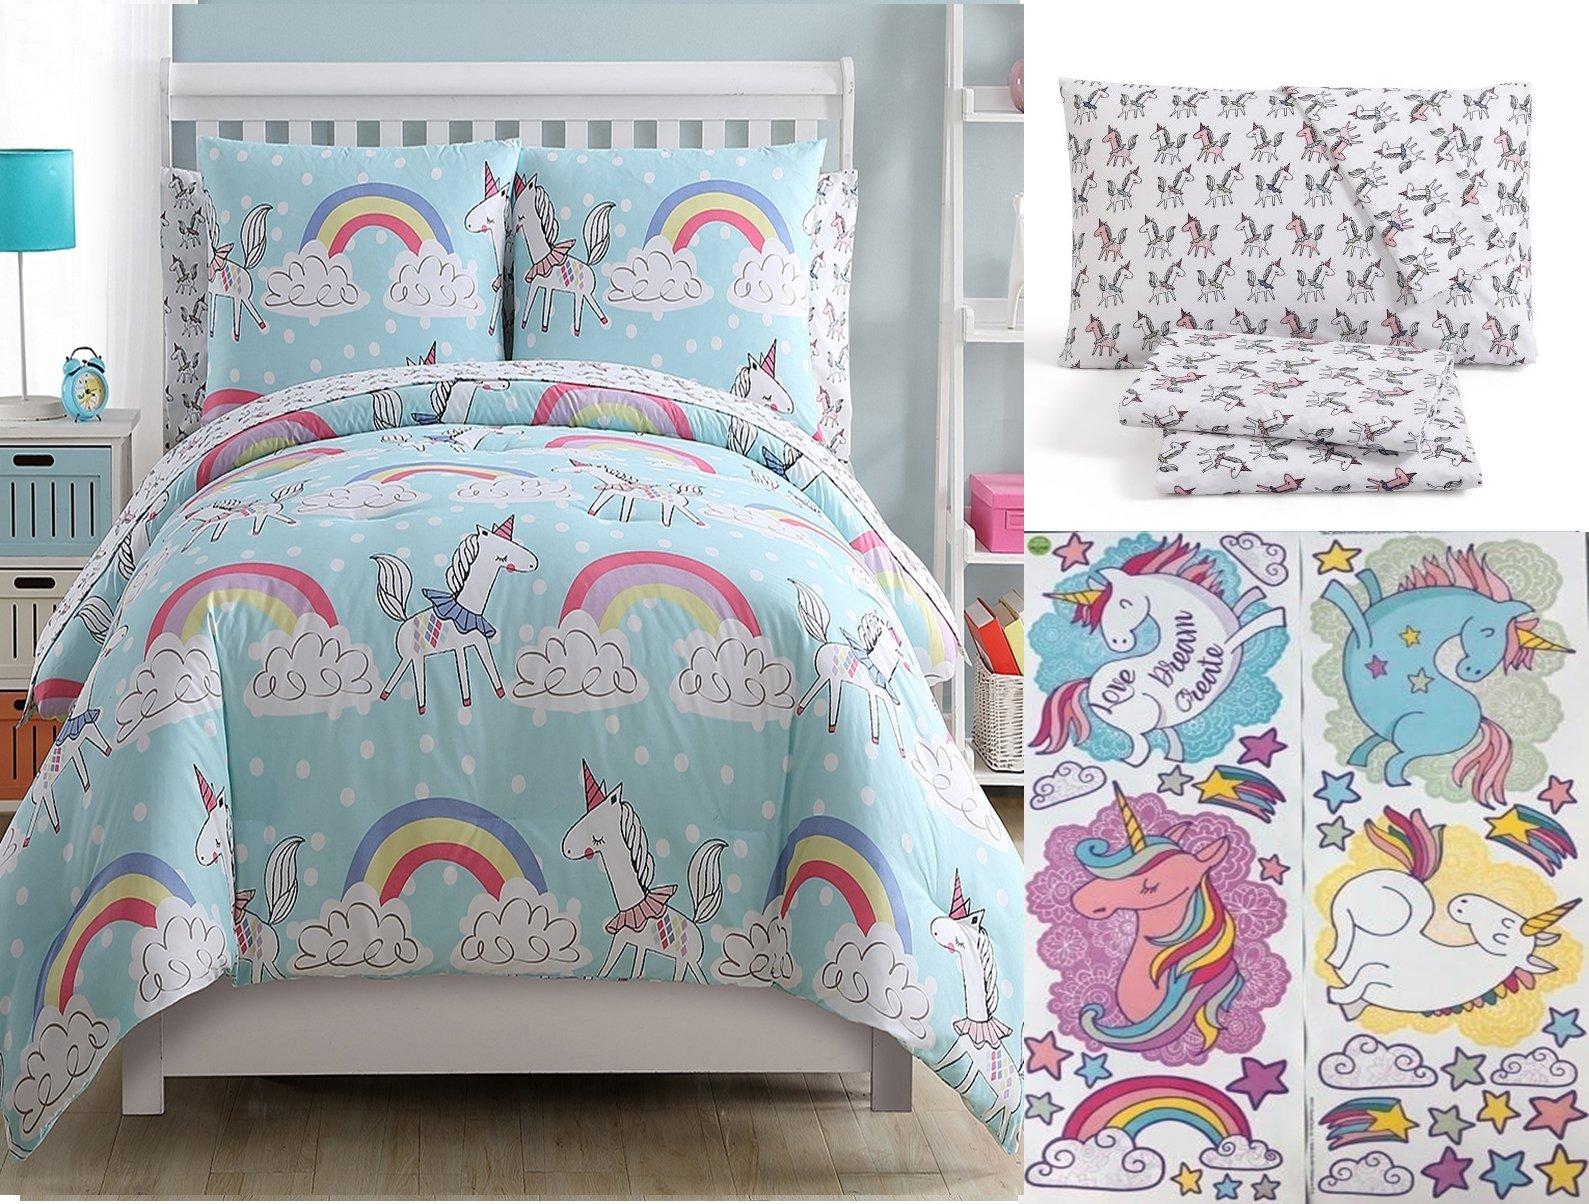 Children's Magical Rainbow Unicorn 7pc FULL Size Comforter & Sheet Set '+ 36pc Wall Decals by Rainbow Unicorn